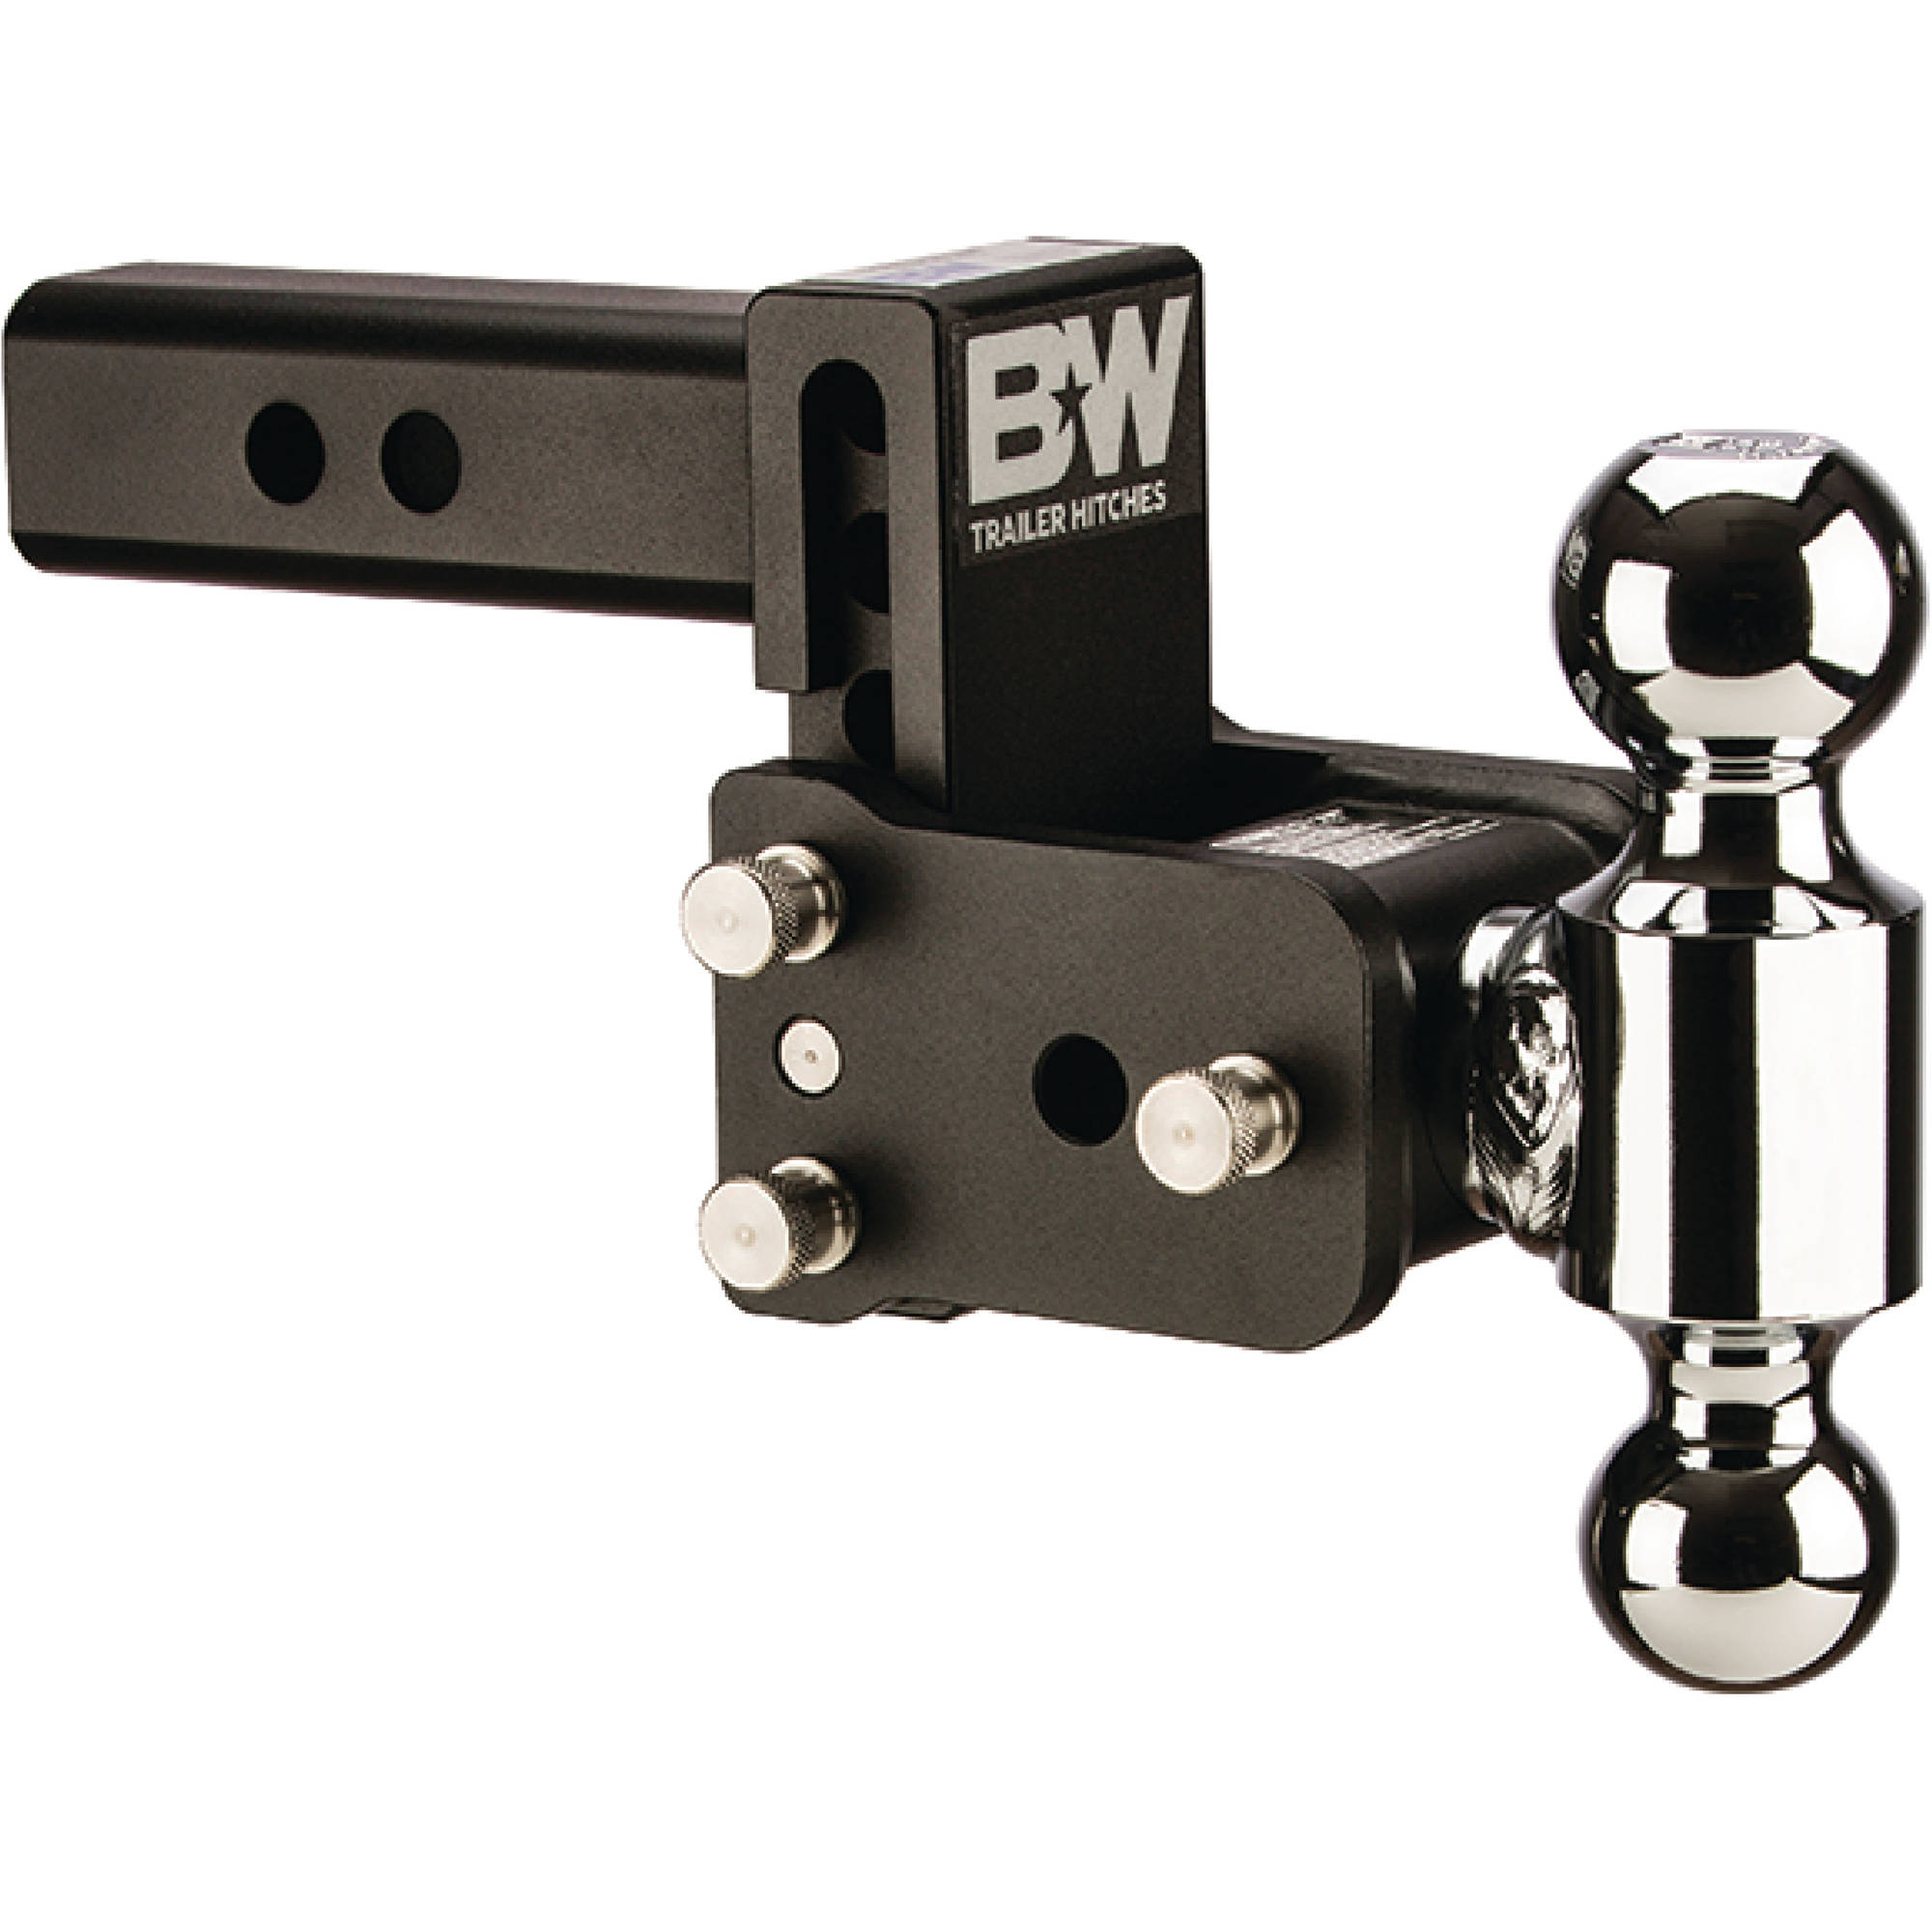 "B&W Trailer Hitches Tow & Stow Receiver Hitch, Fits Standard 2"" Receiver"